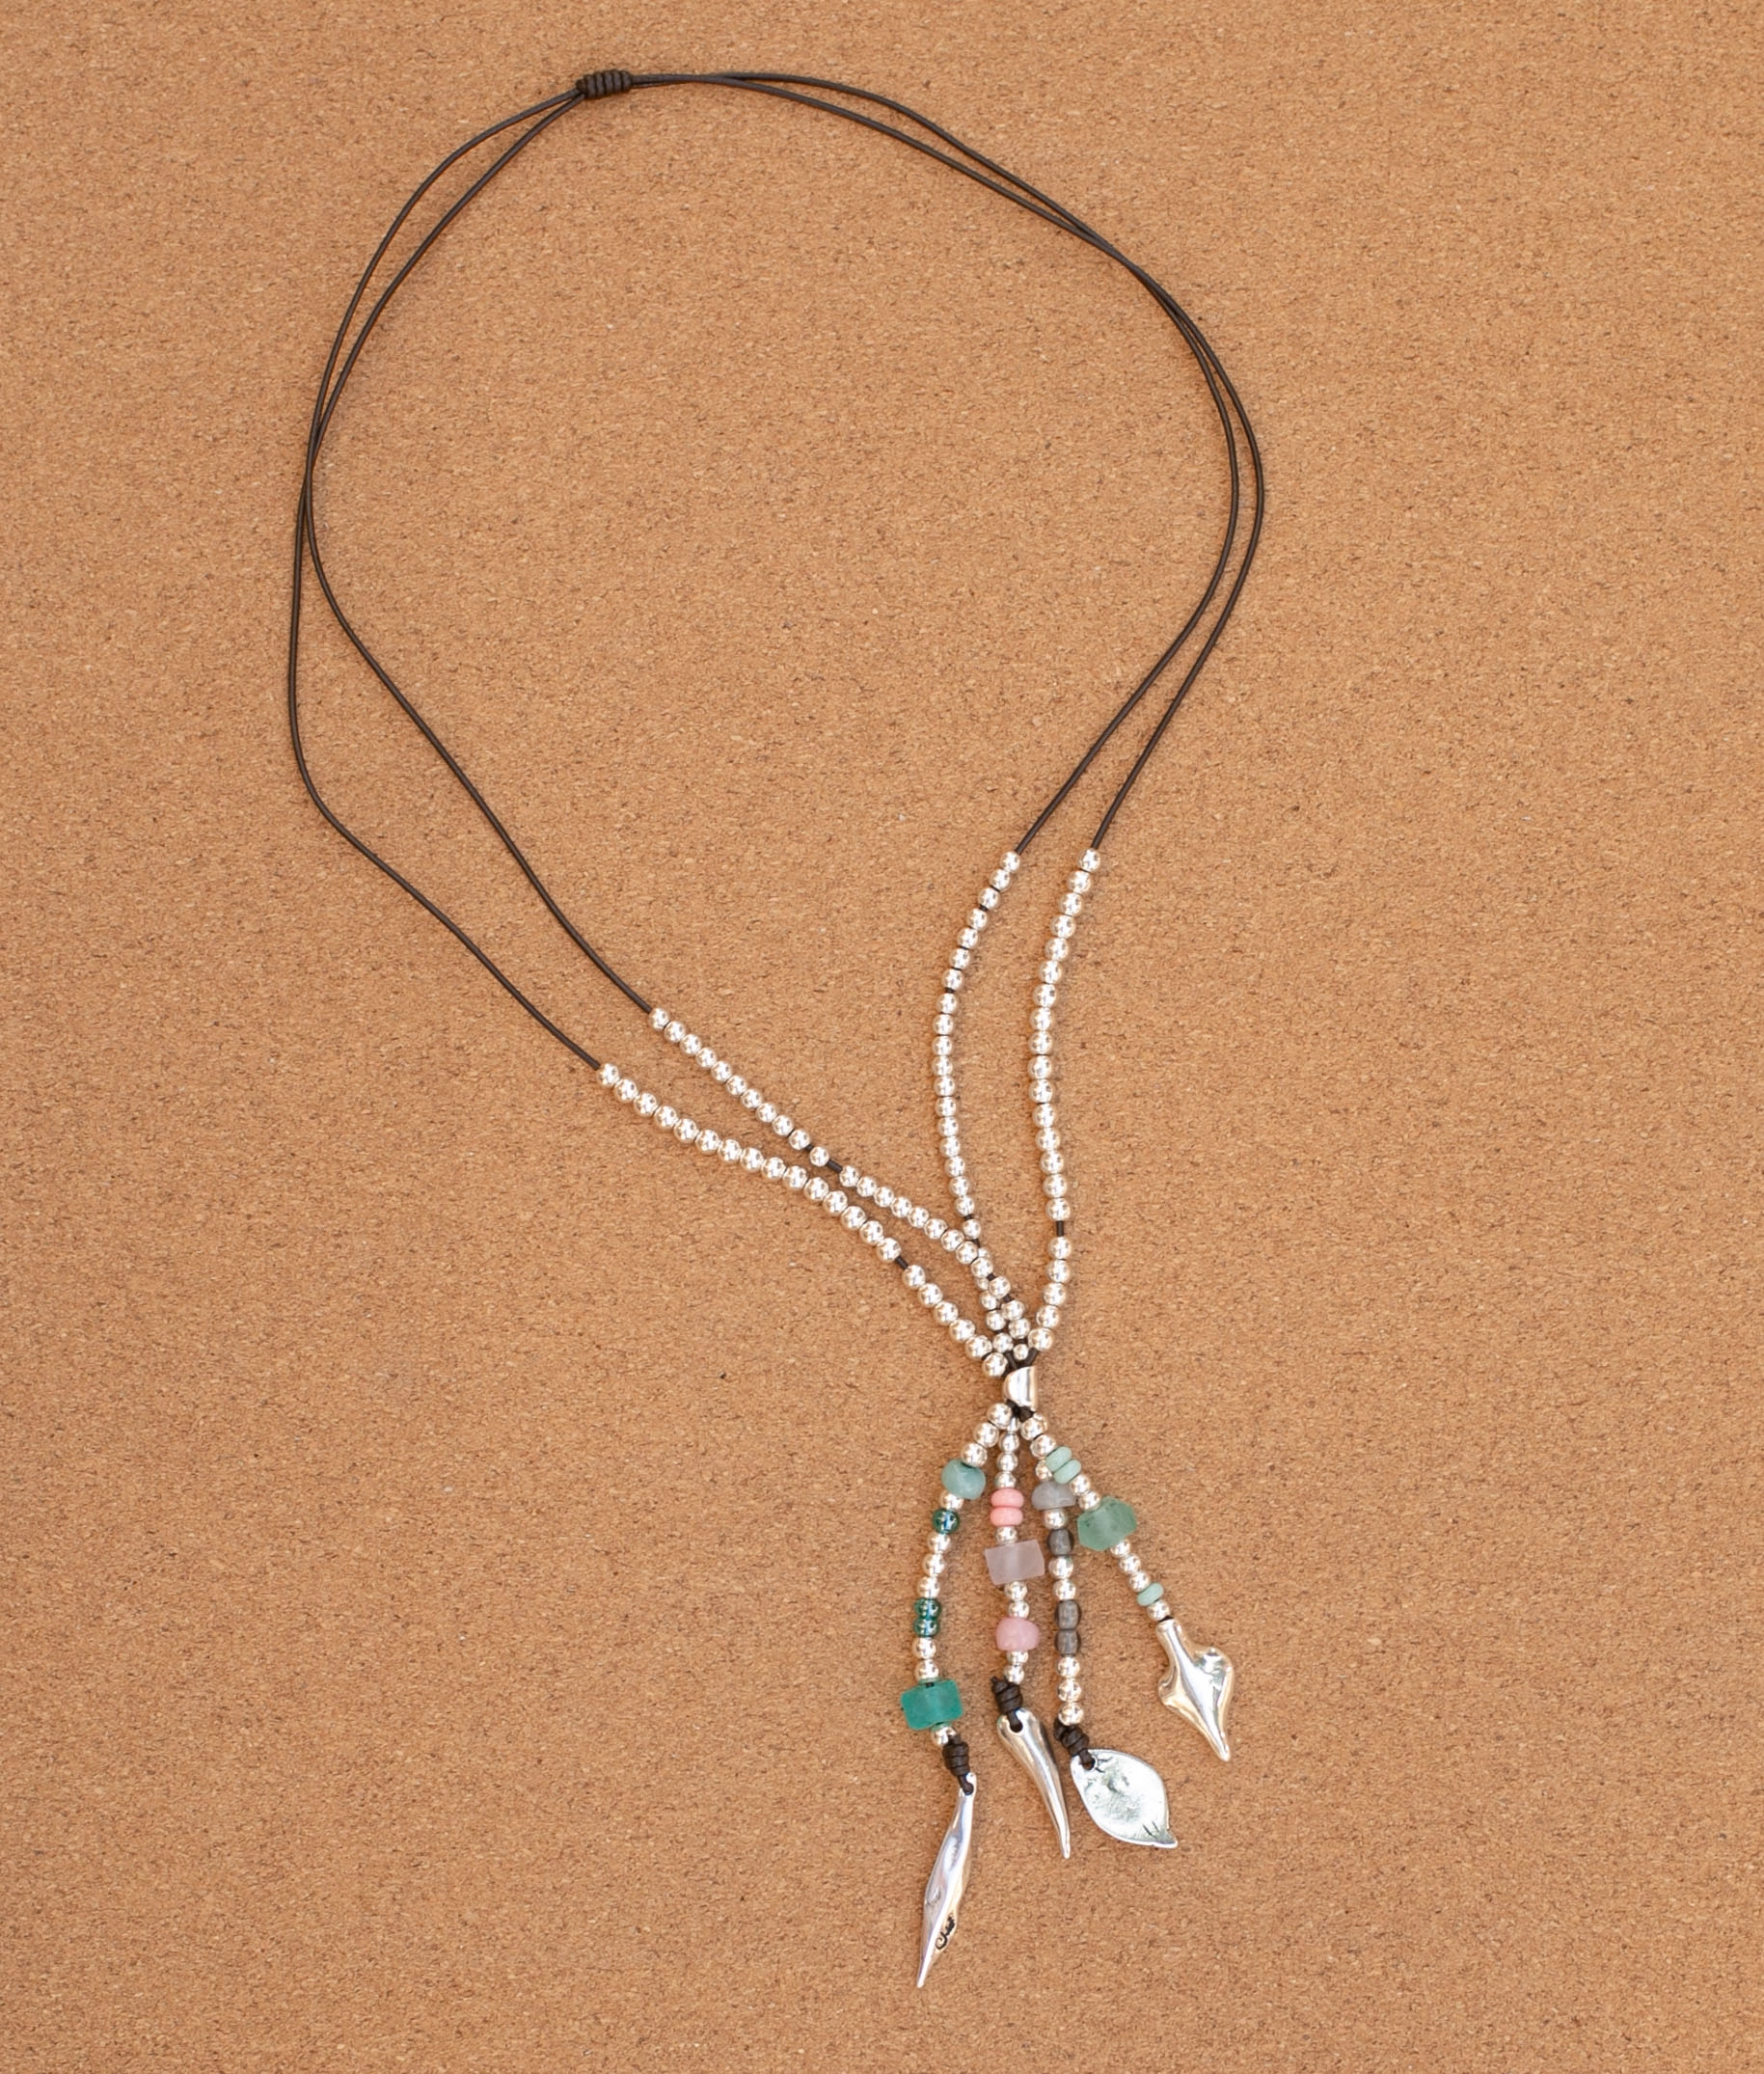 Necklace Hojarasca - Multicolor